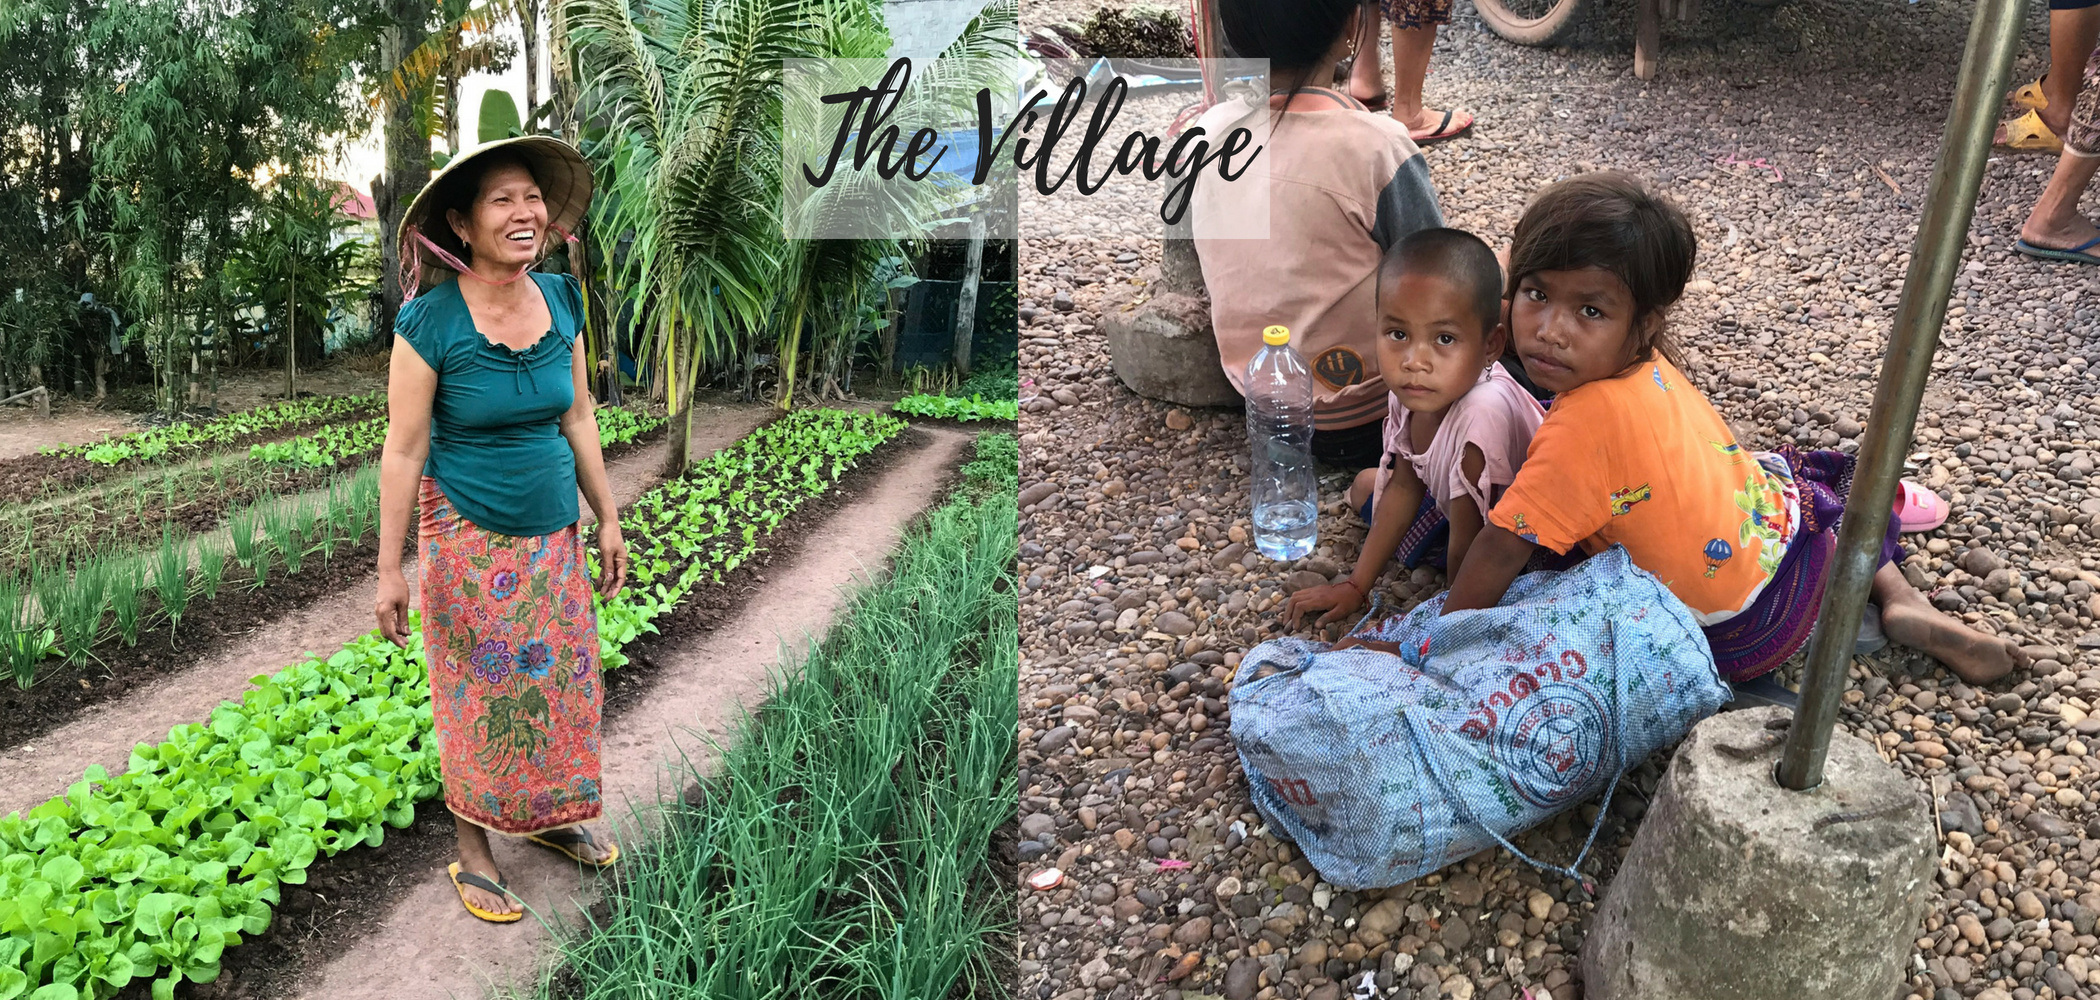 The Village and the impact of your help